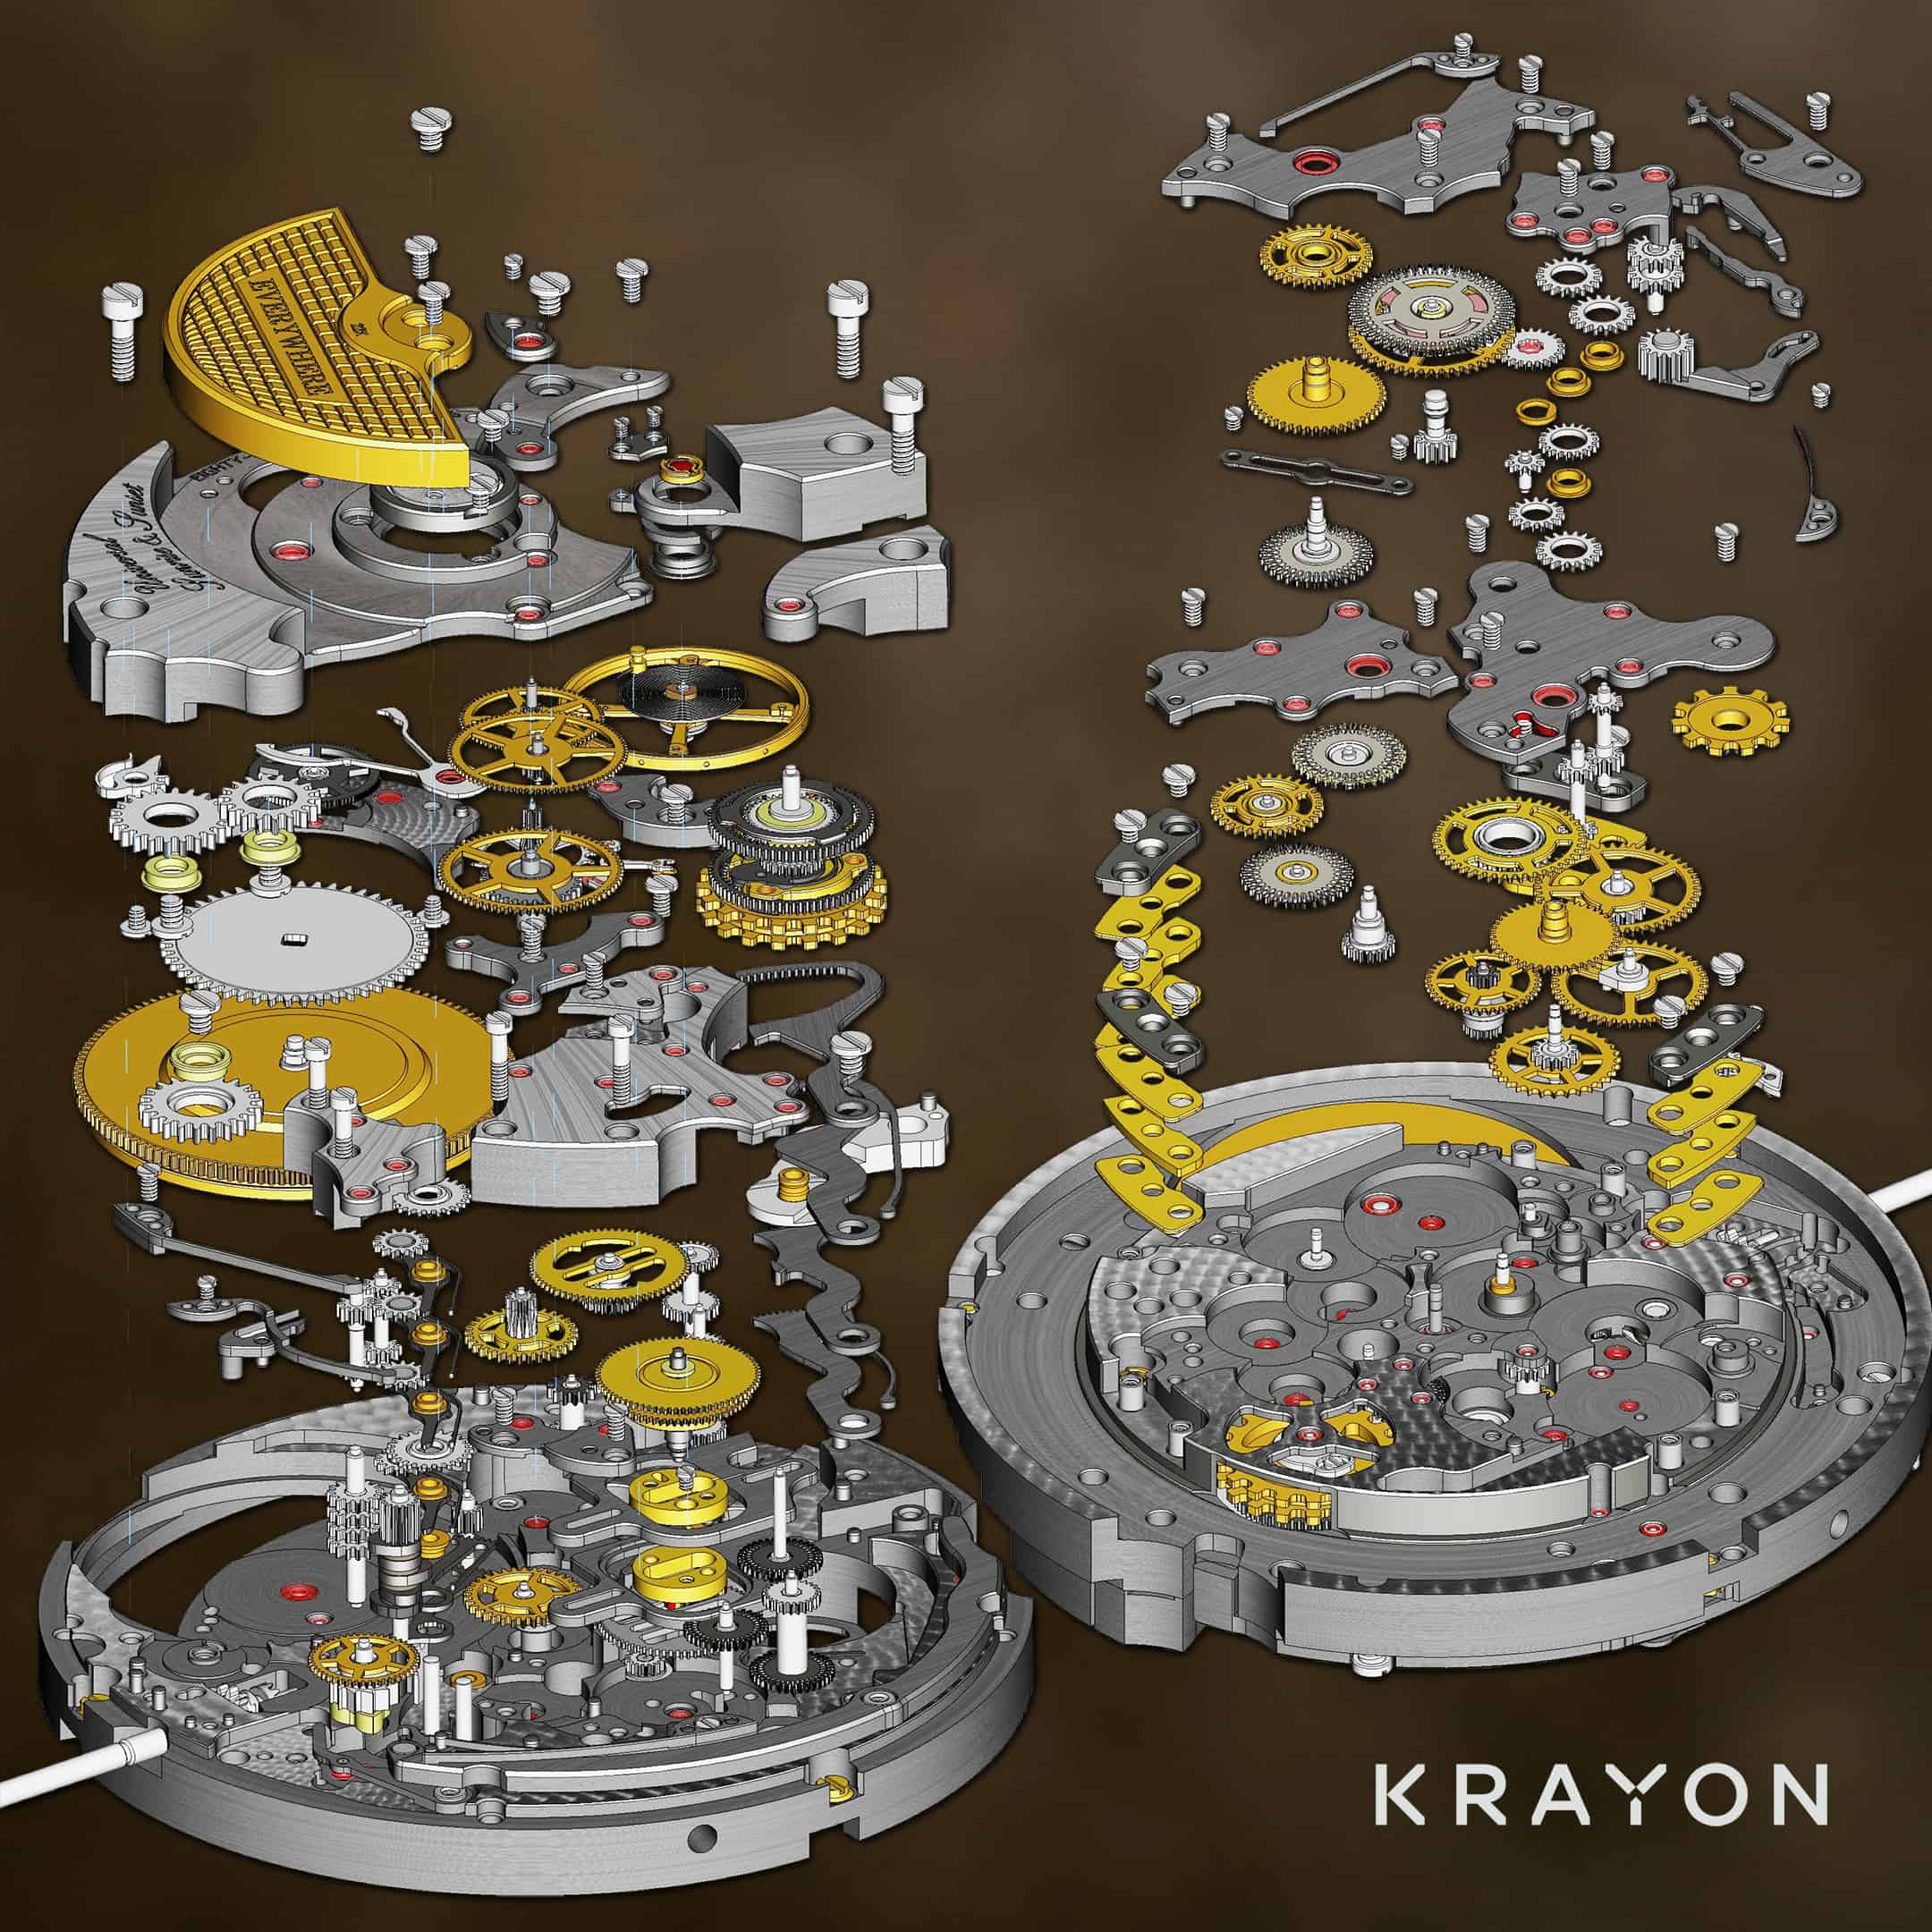 Krayon Everywhere - 595 Exploded Components